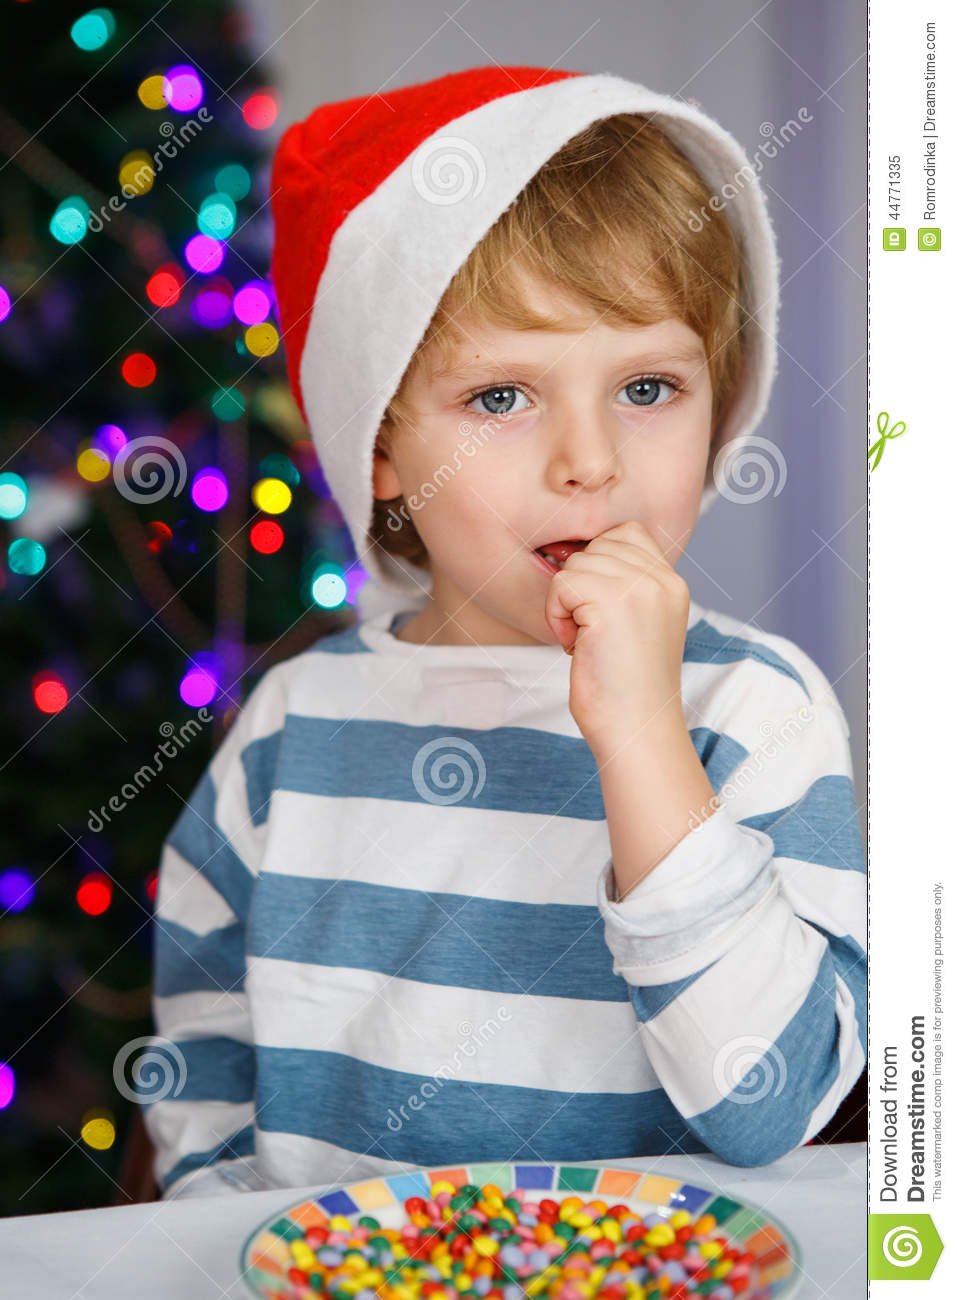 ca94e9da0c2 Little boy in santa hat with christmas tree and lights on background eating  sweets